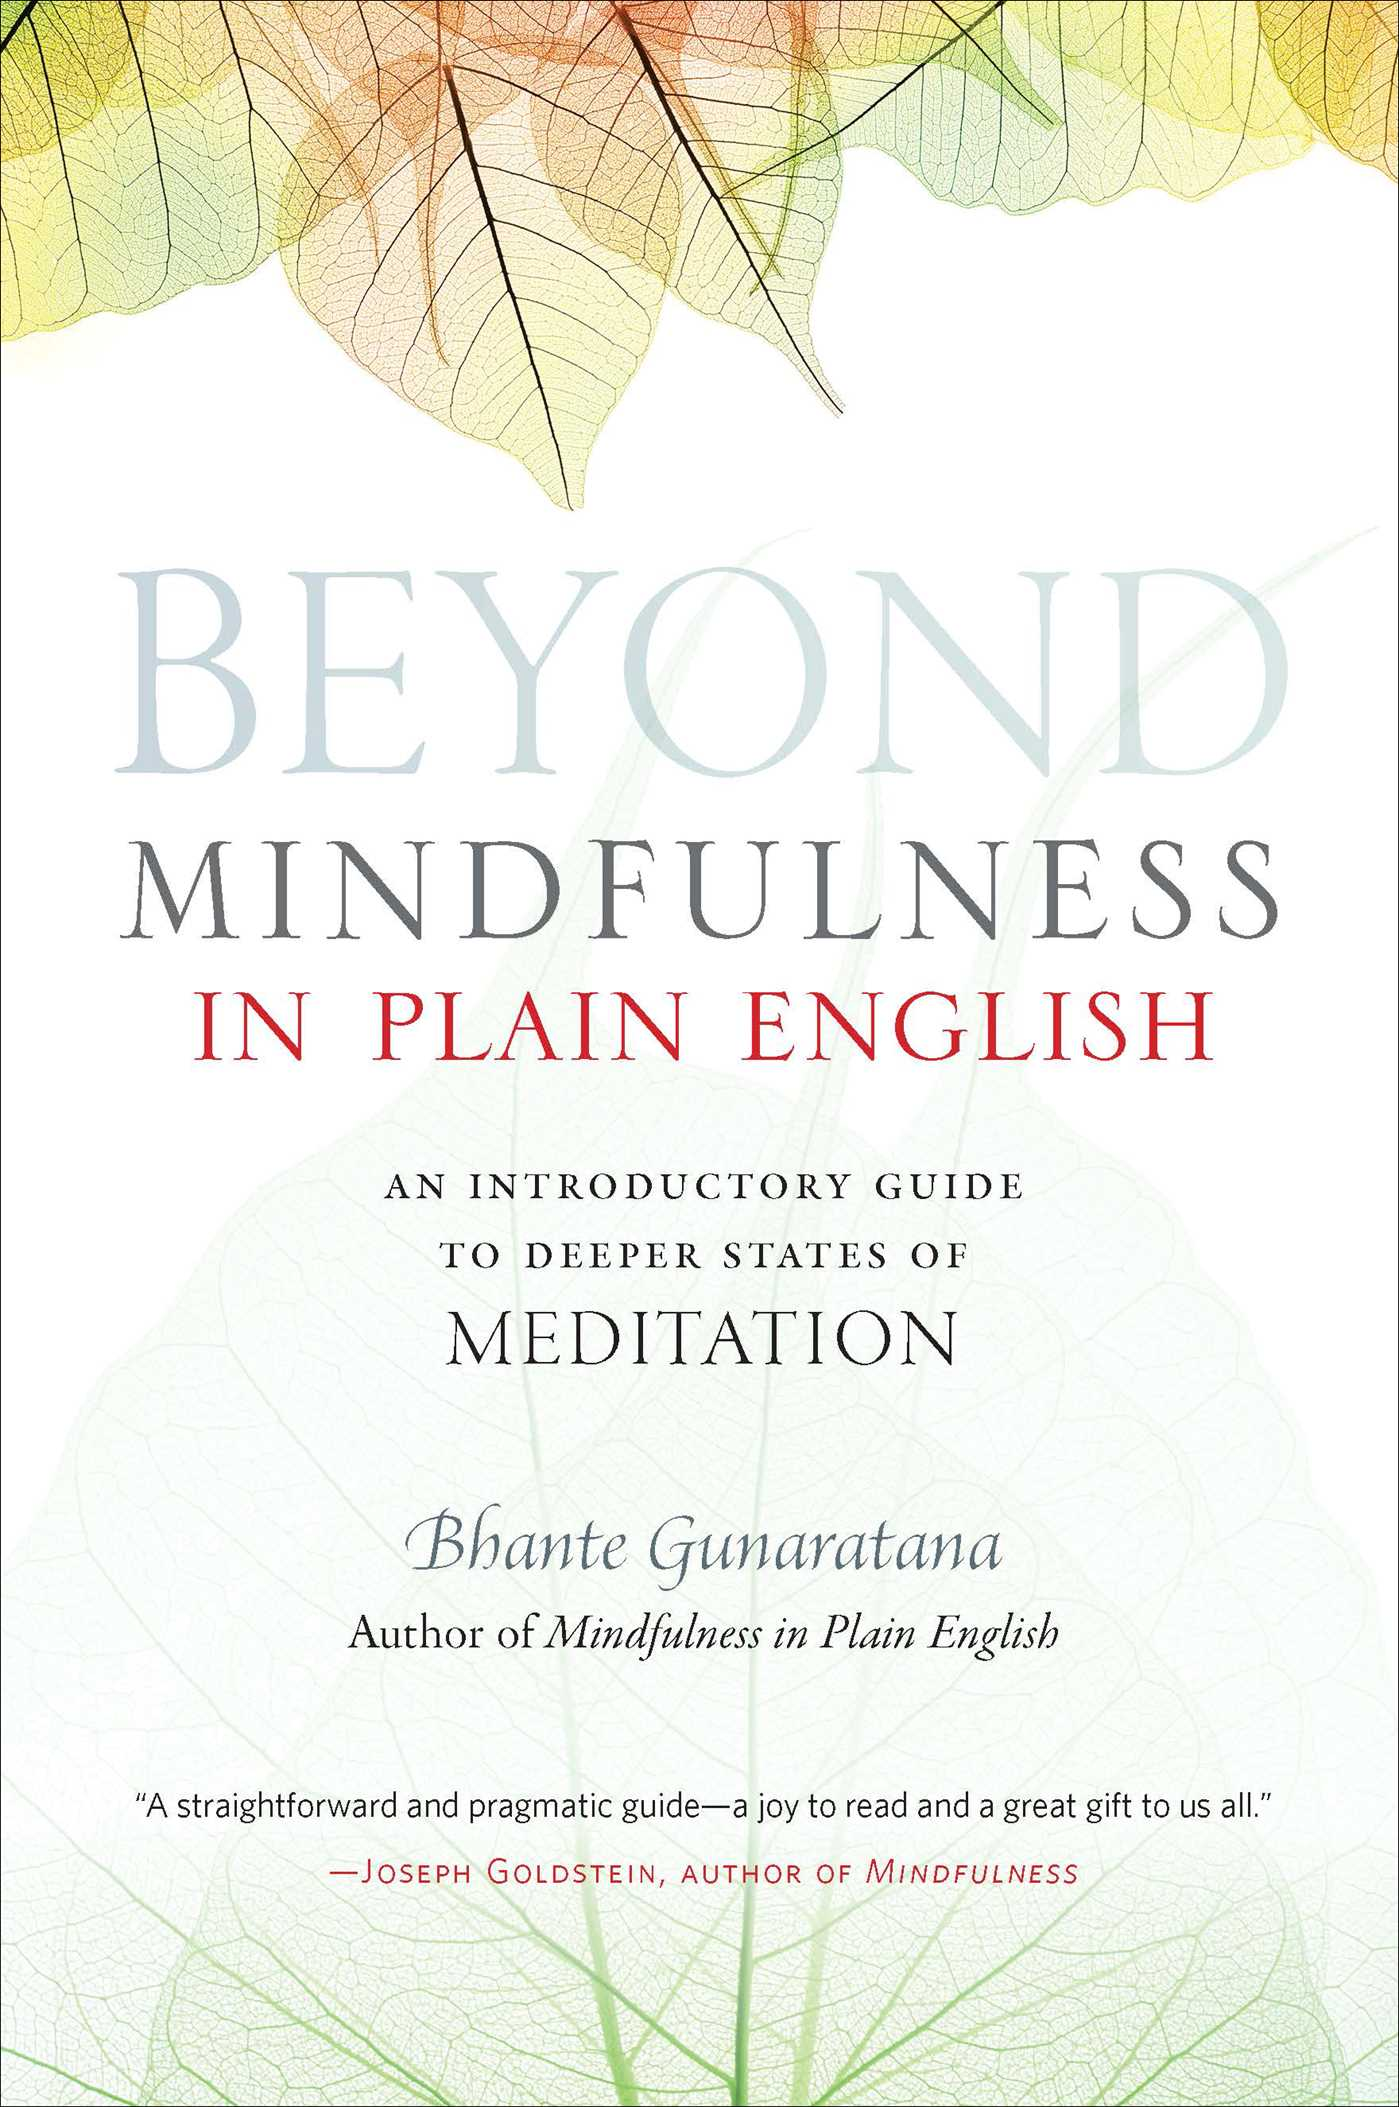 Beyond mindfulness in plain english 9780861715299 hr